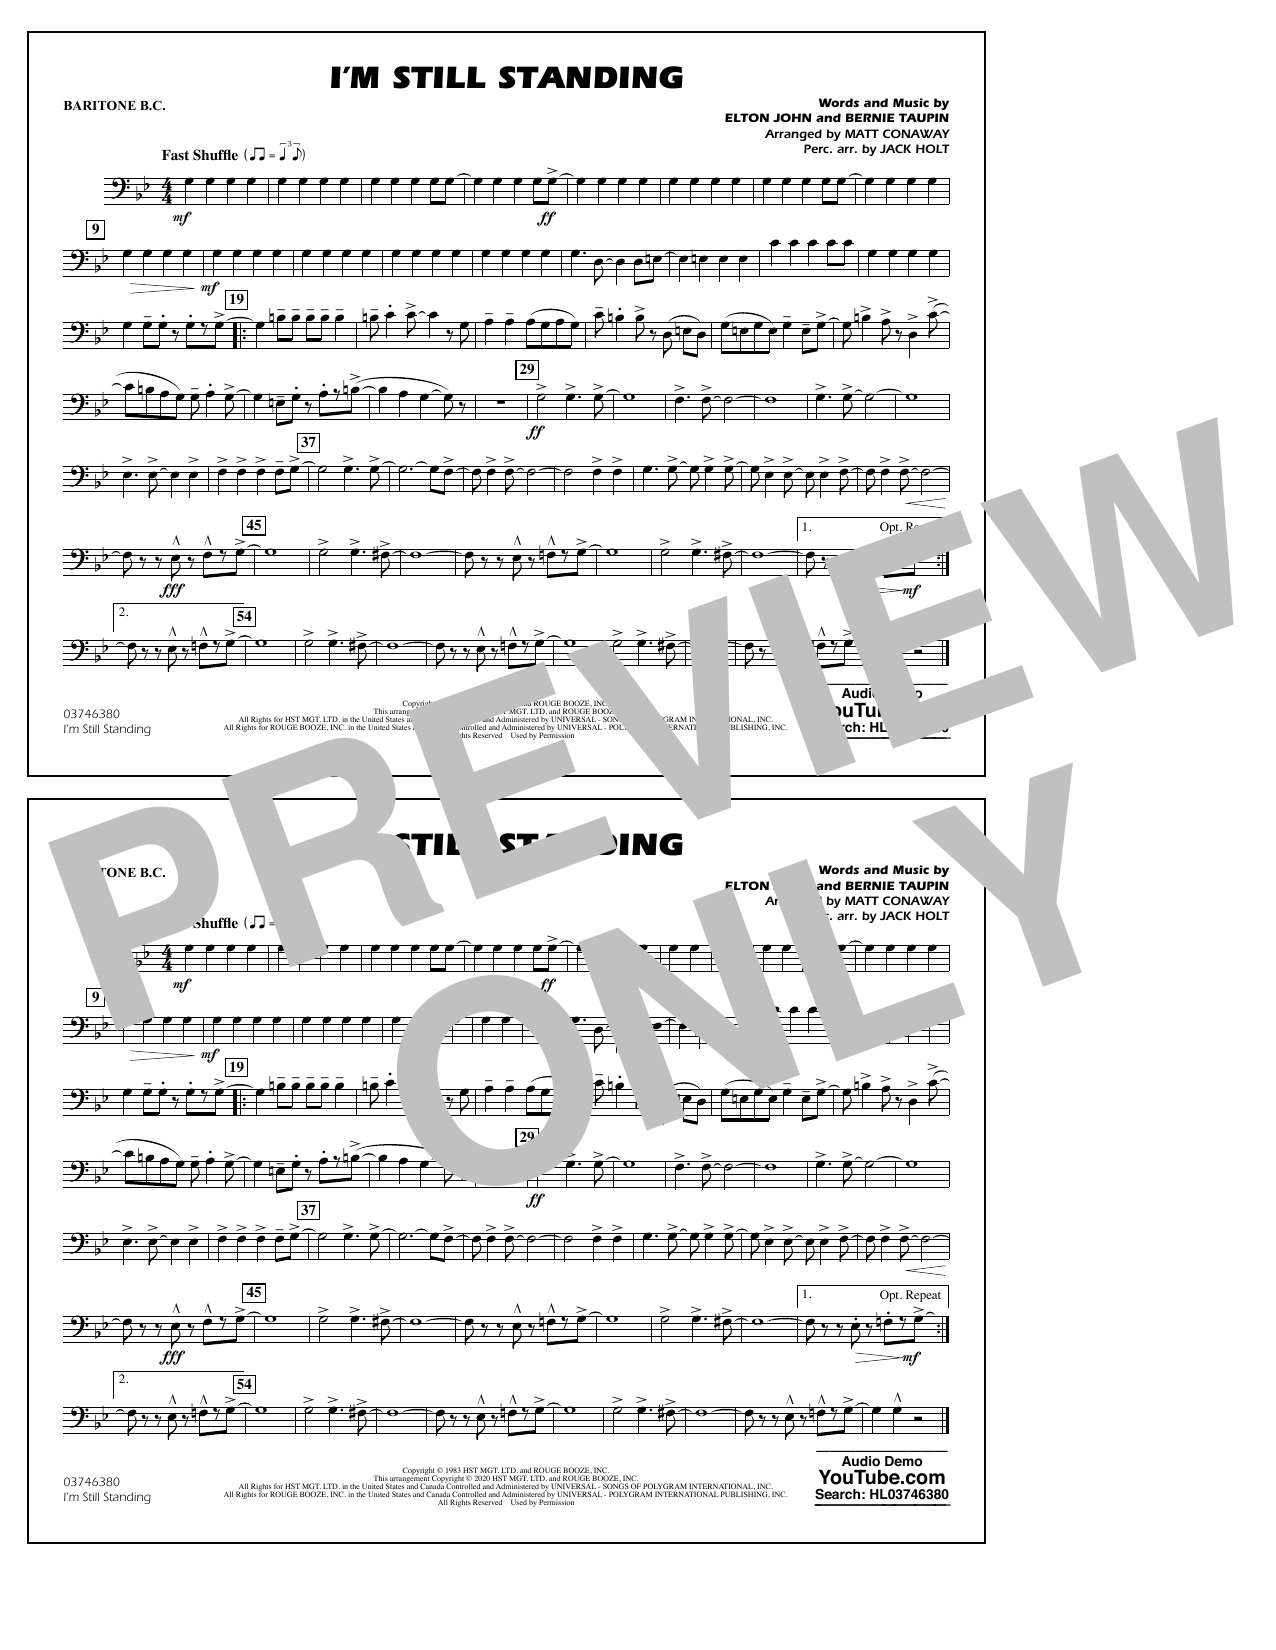 I'm Still Standing (arr. Matt Conaway and Jack Holt) - Baritone B.C. Sheet Music